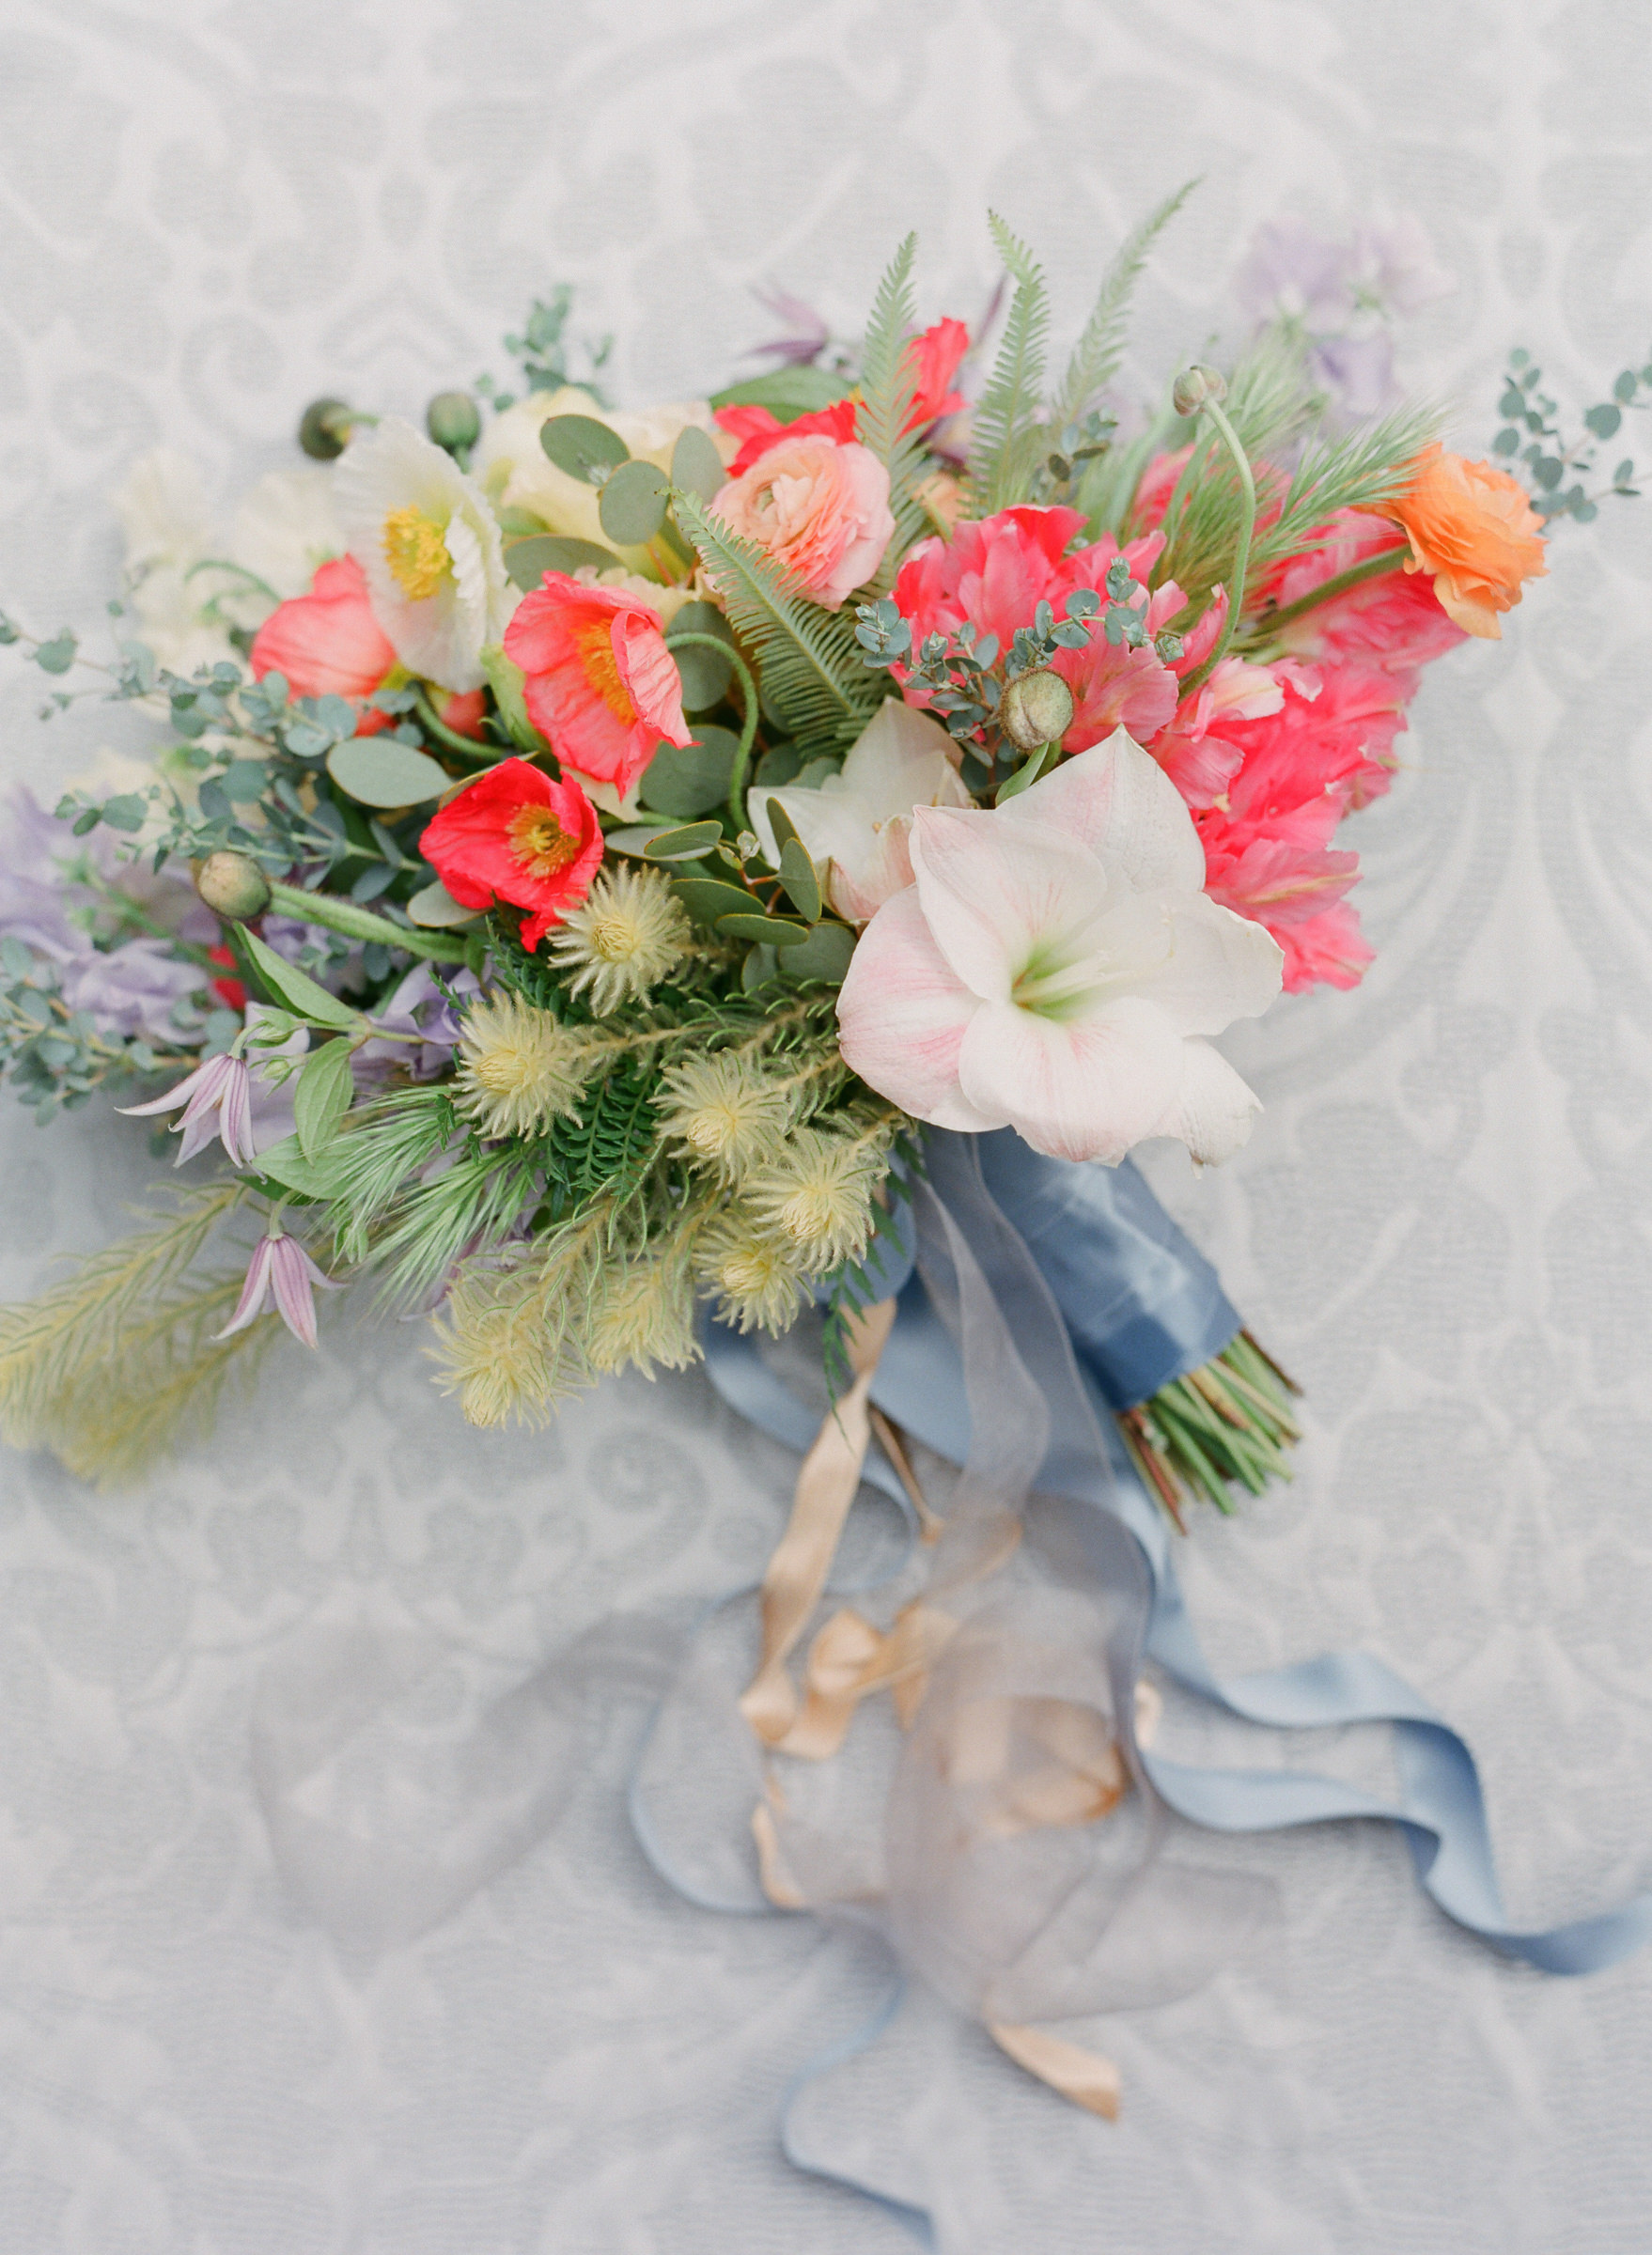 Summer bouquet with amaryllis and poppies - photo by Corbin Gurkin